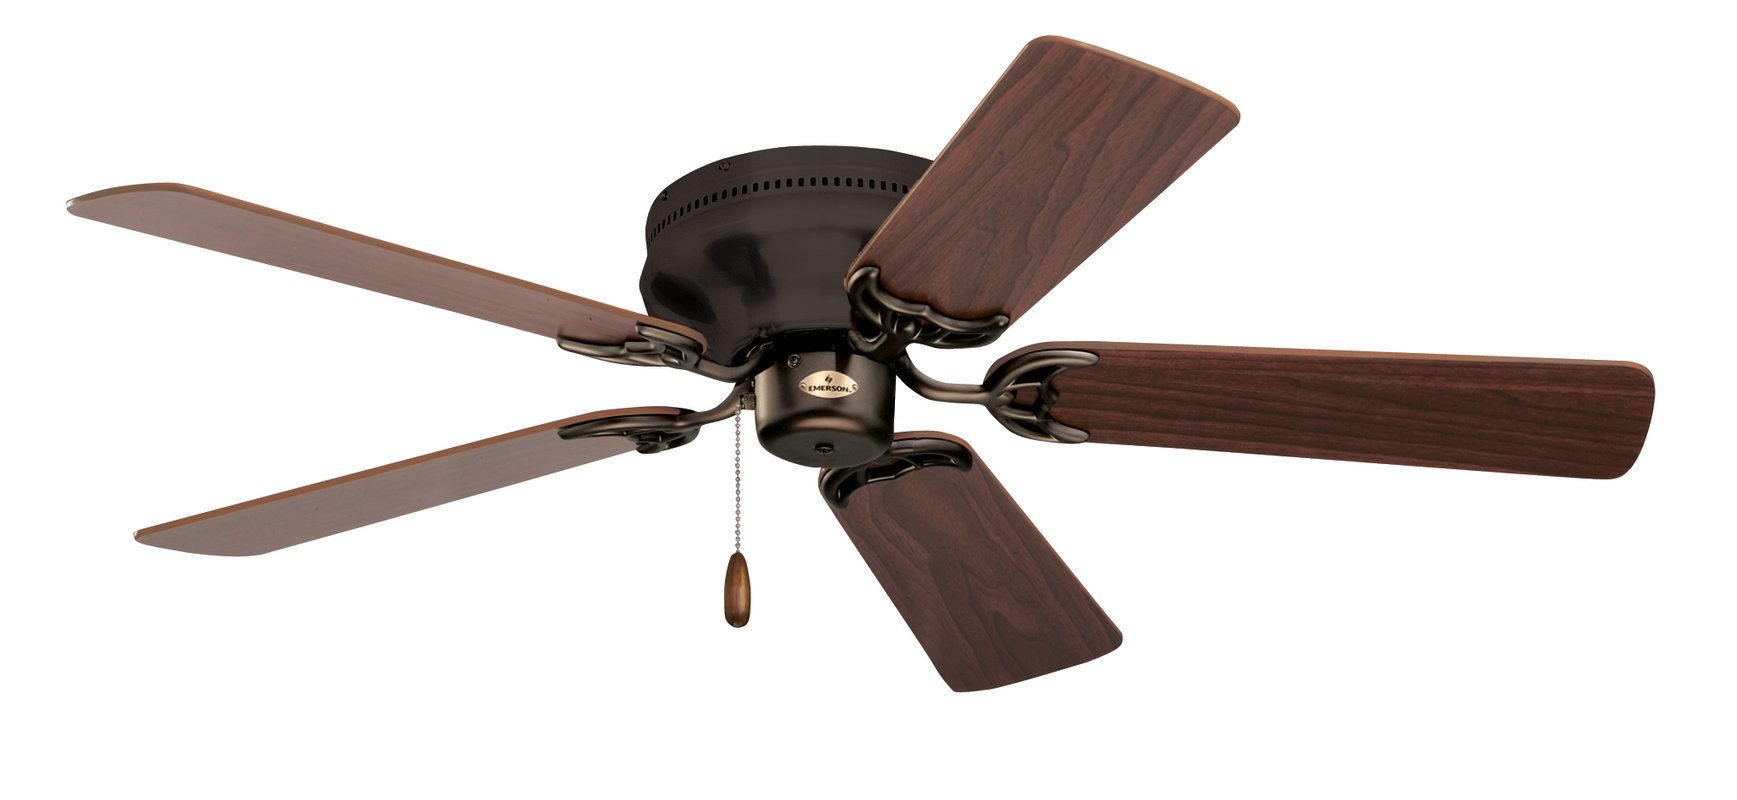 Ceiling Fan Blades : Emerson cf sorb oil rubbed bronze snugger quot blade